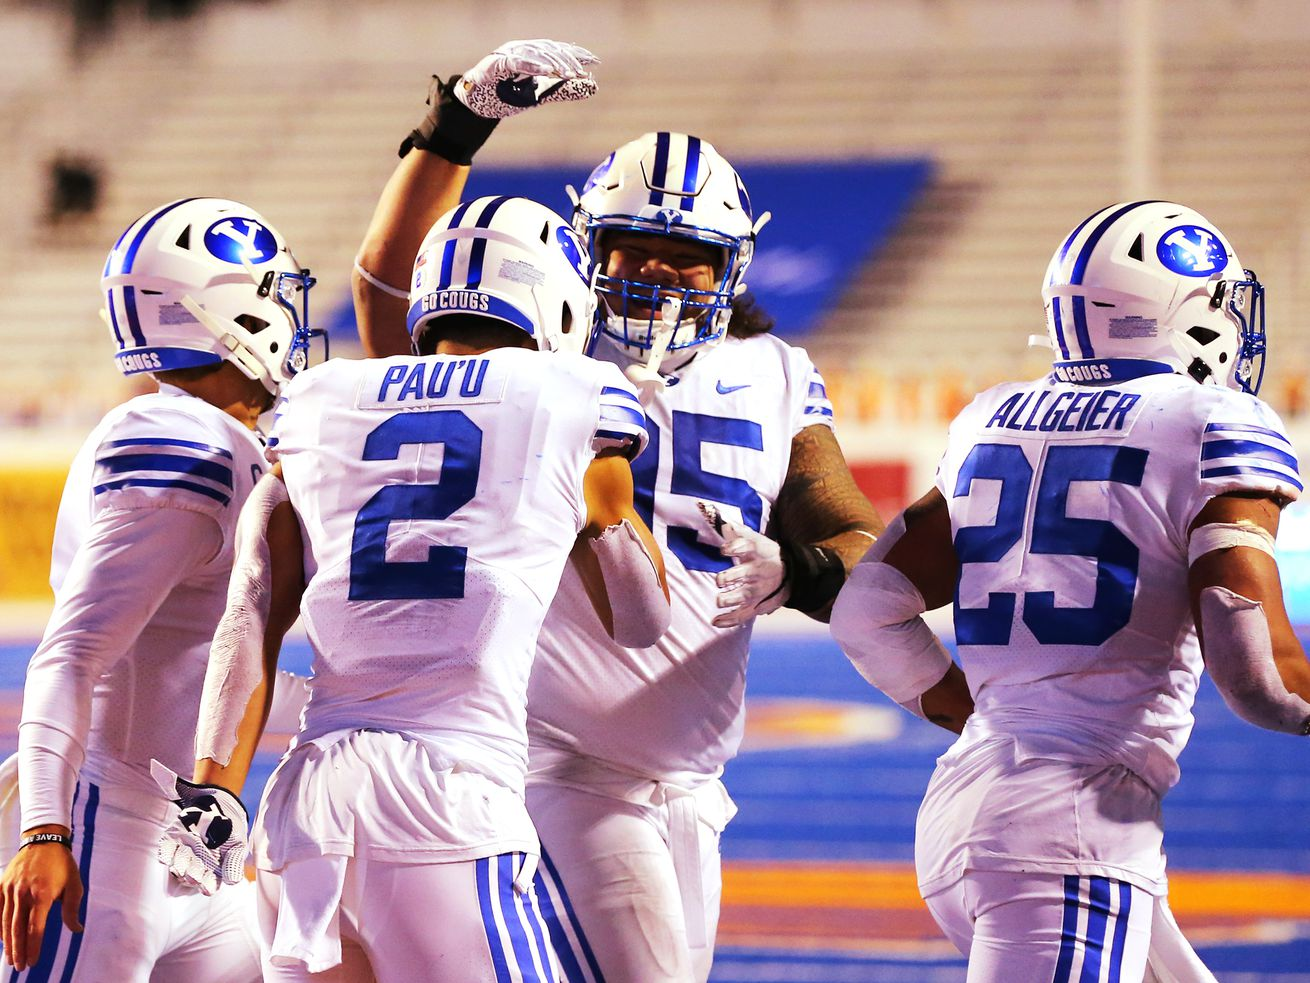 Brigham Young Cougars wide receiver Neil Pau'u (2) celebrates a touchdown with teammates as BYU and Boise State play a college football game at Albertsons Stadium in Boise on Friday, Nov. 6, 2020. BYU won 51-17.